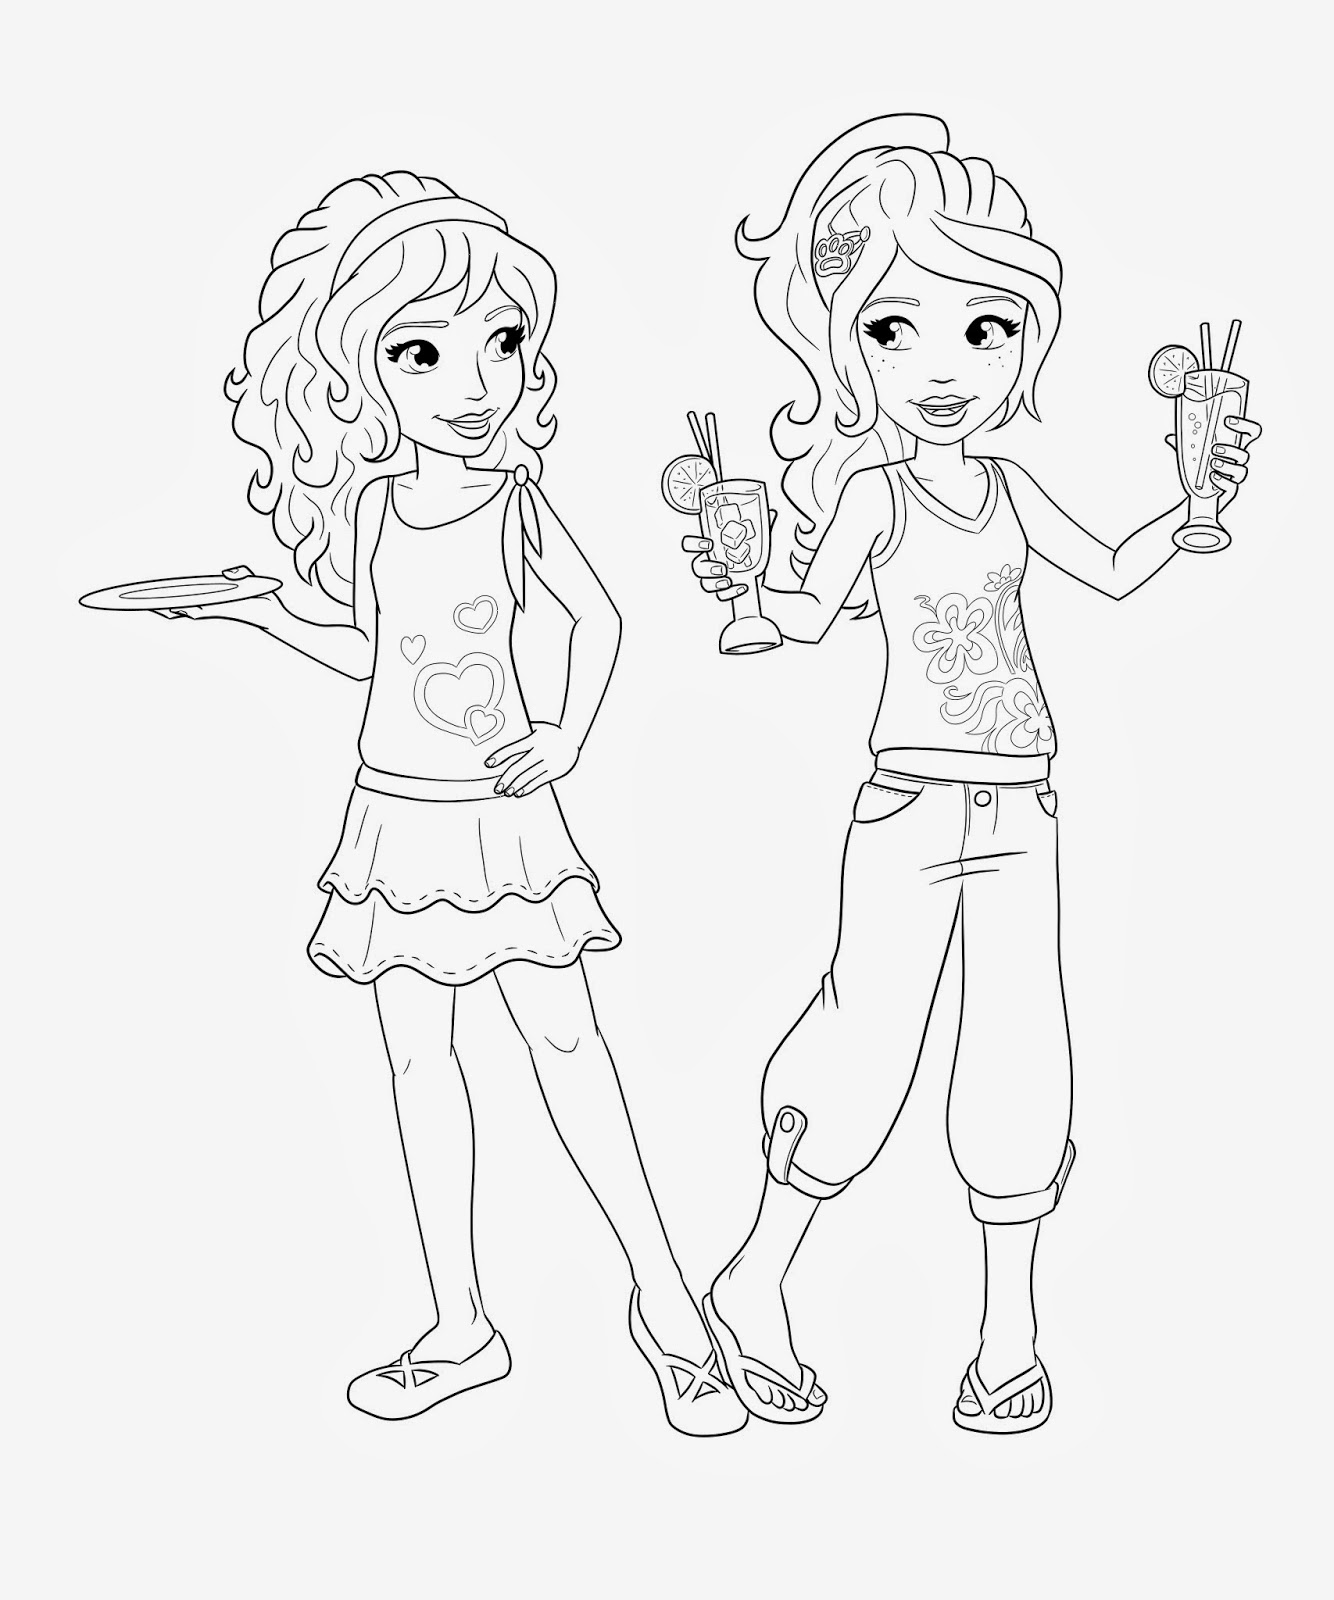 Jesper soelberg lego wear friends illustrations for Coloring pages of lego friends